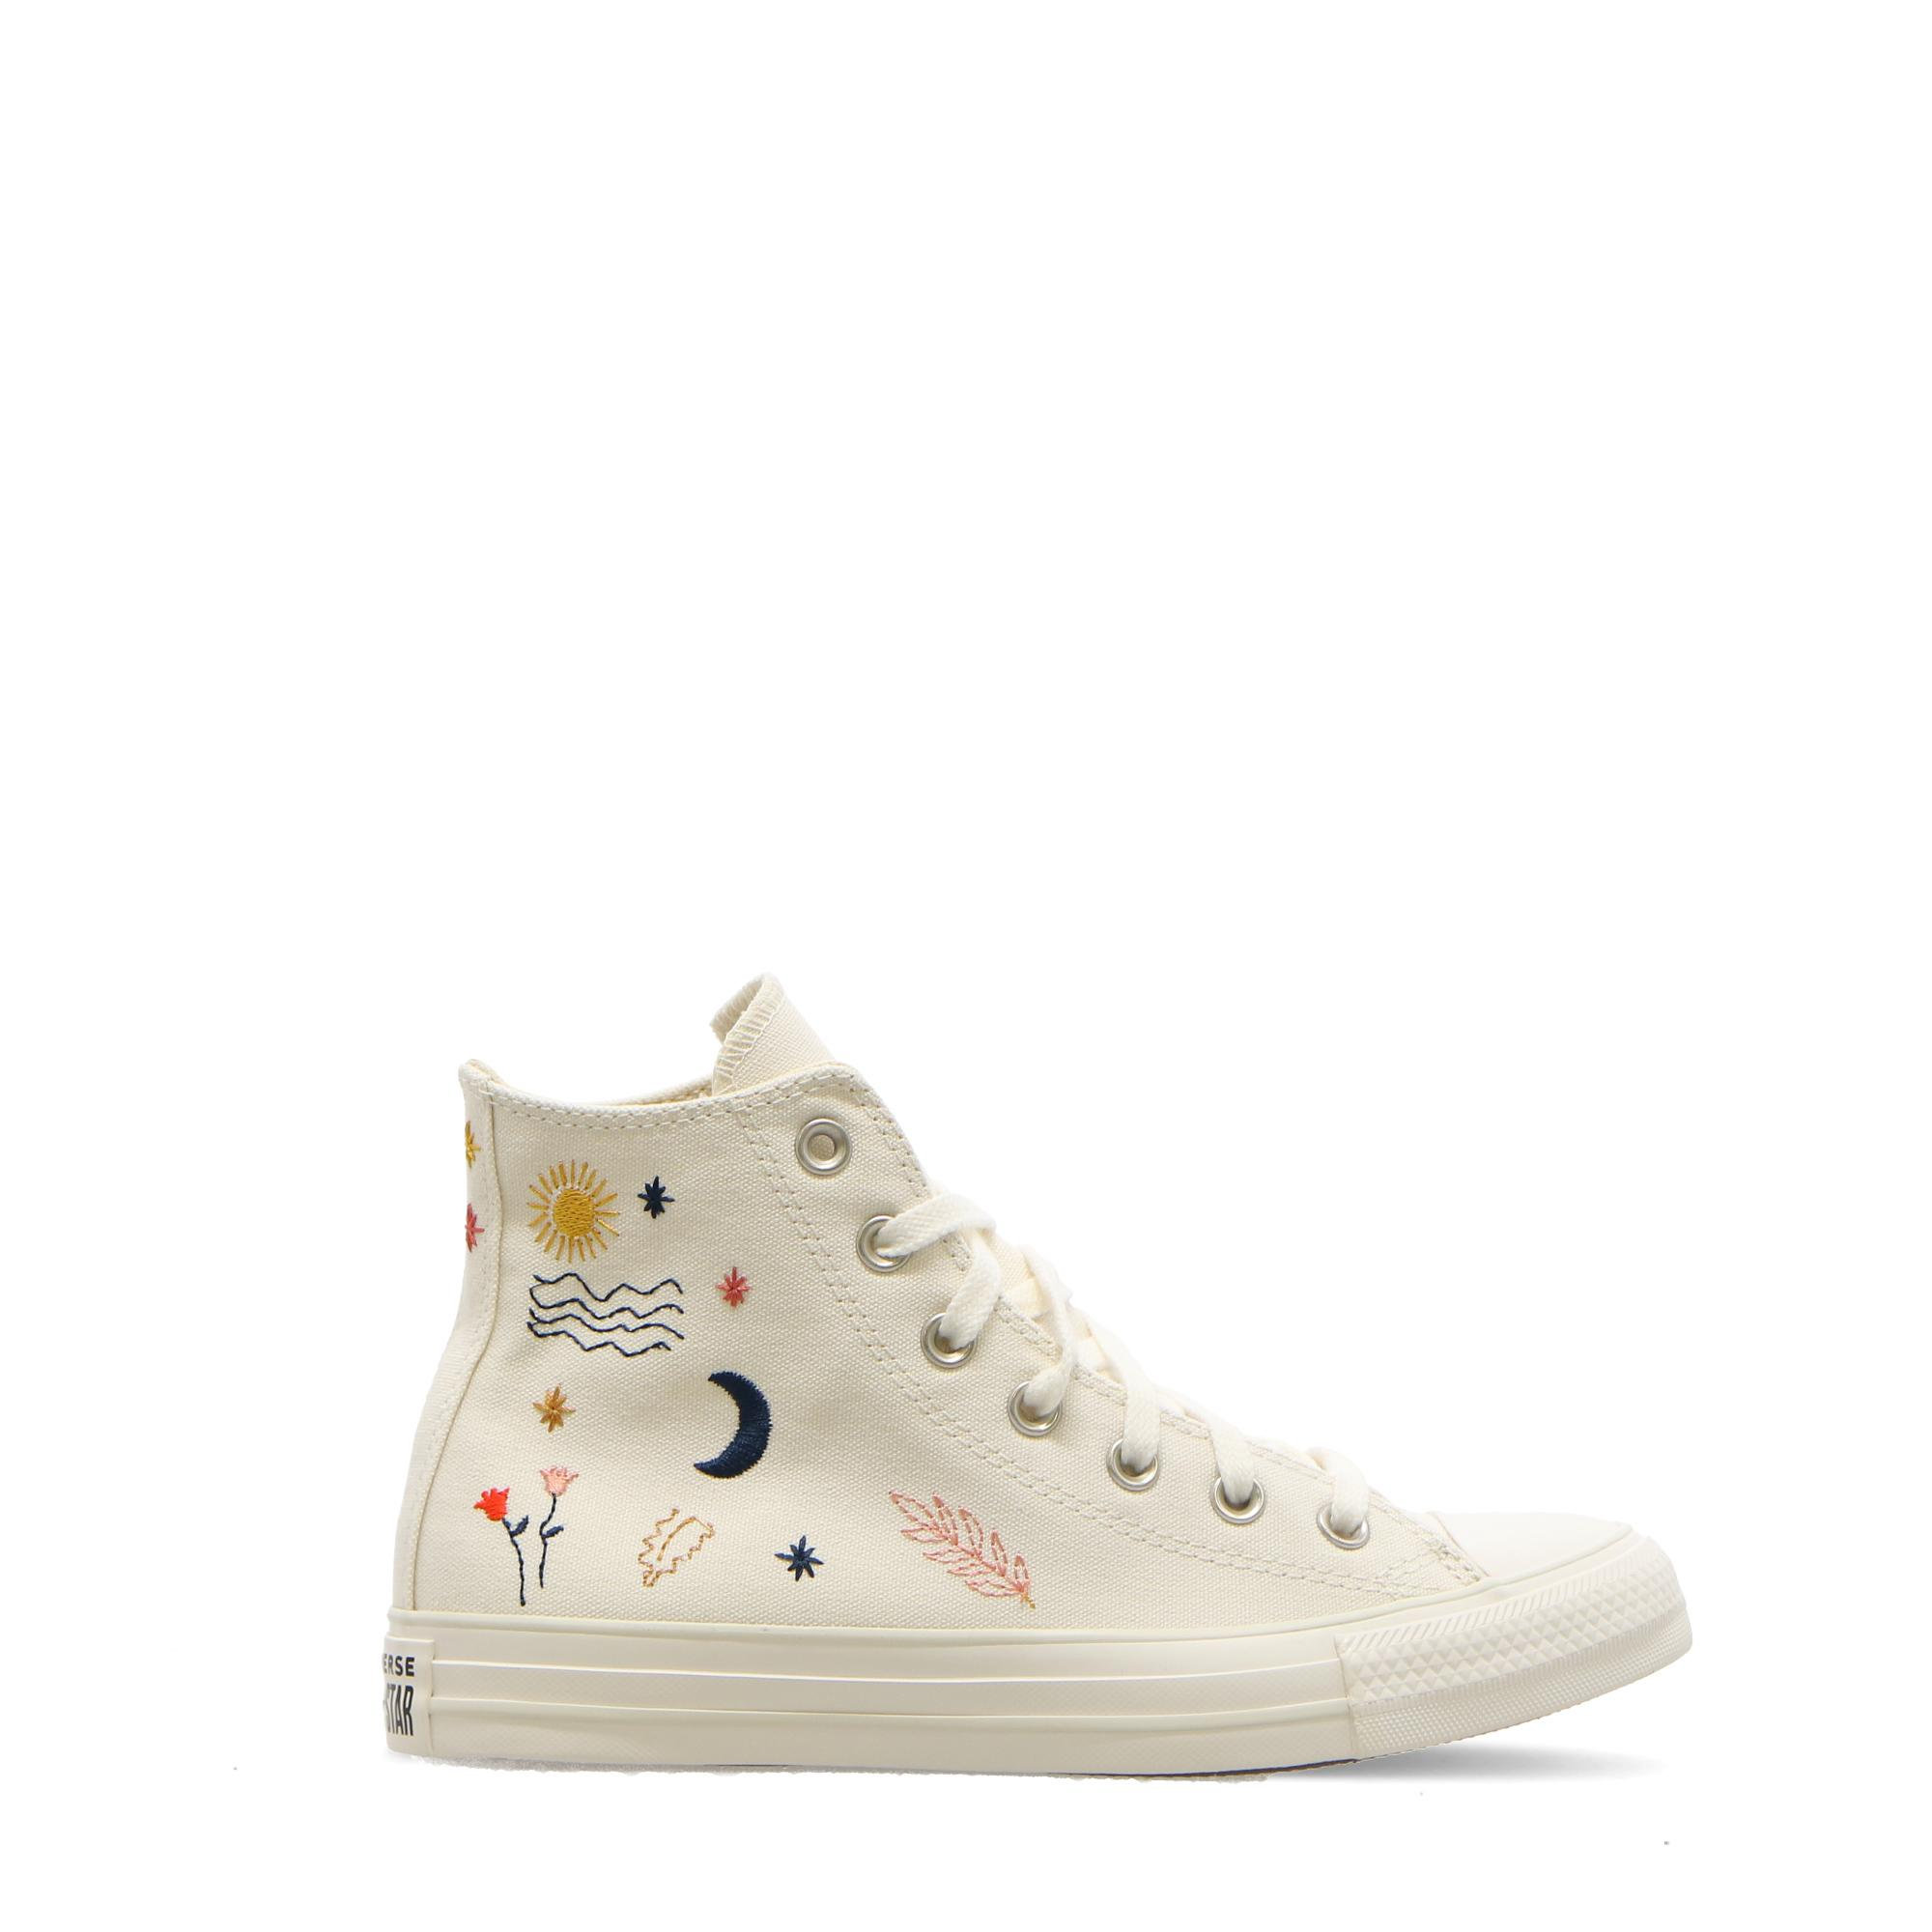 Converse Chuck Taylor All Star Hi Egret vintage white black